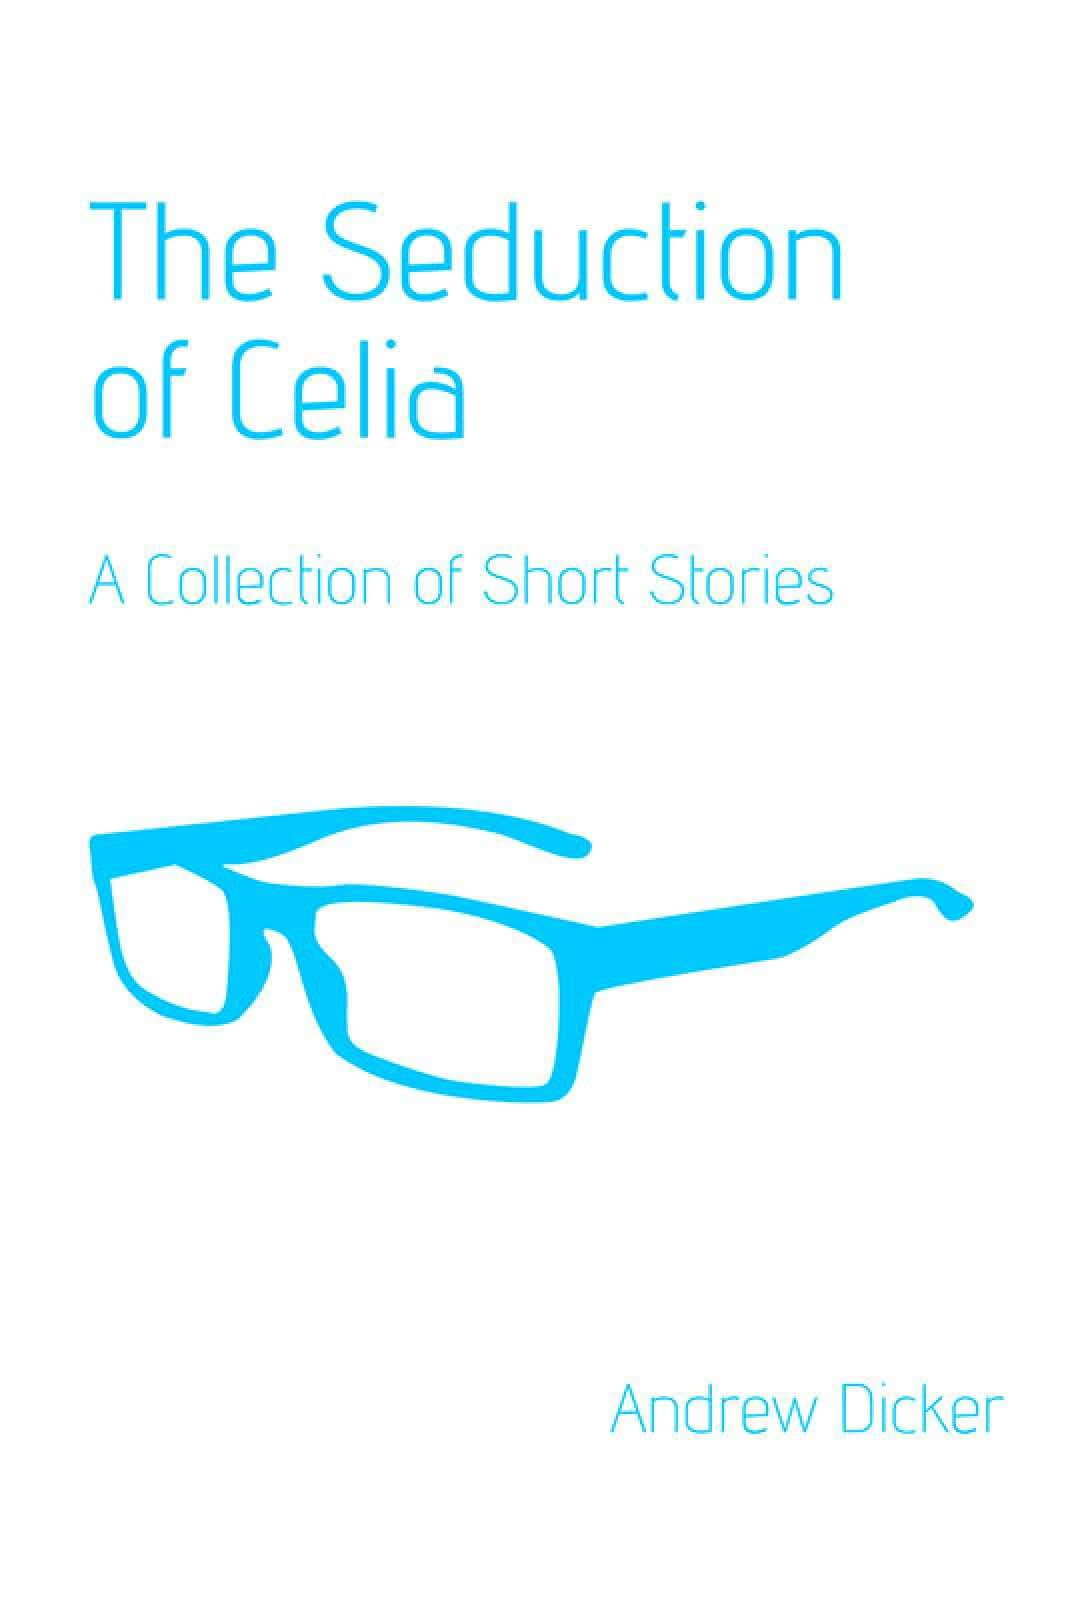 The Seduction of Celia: A Collection of Short Stories